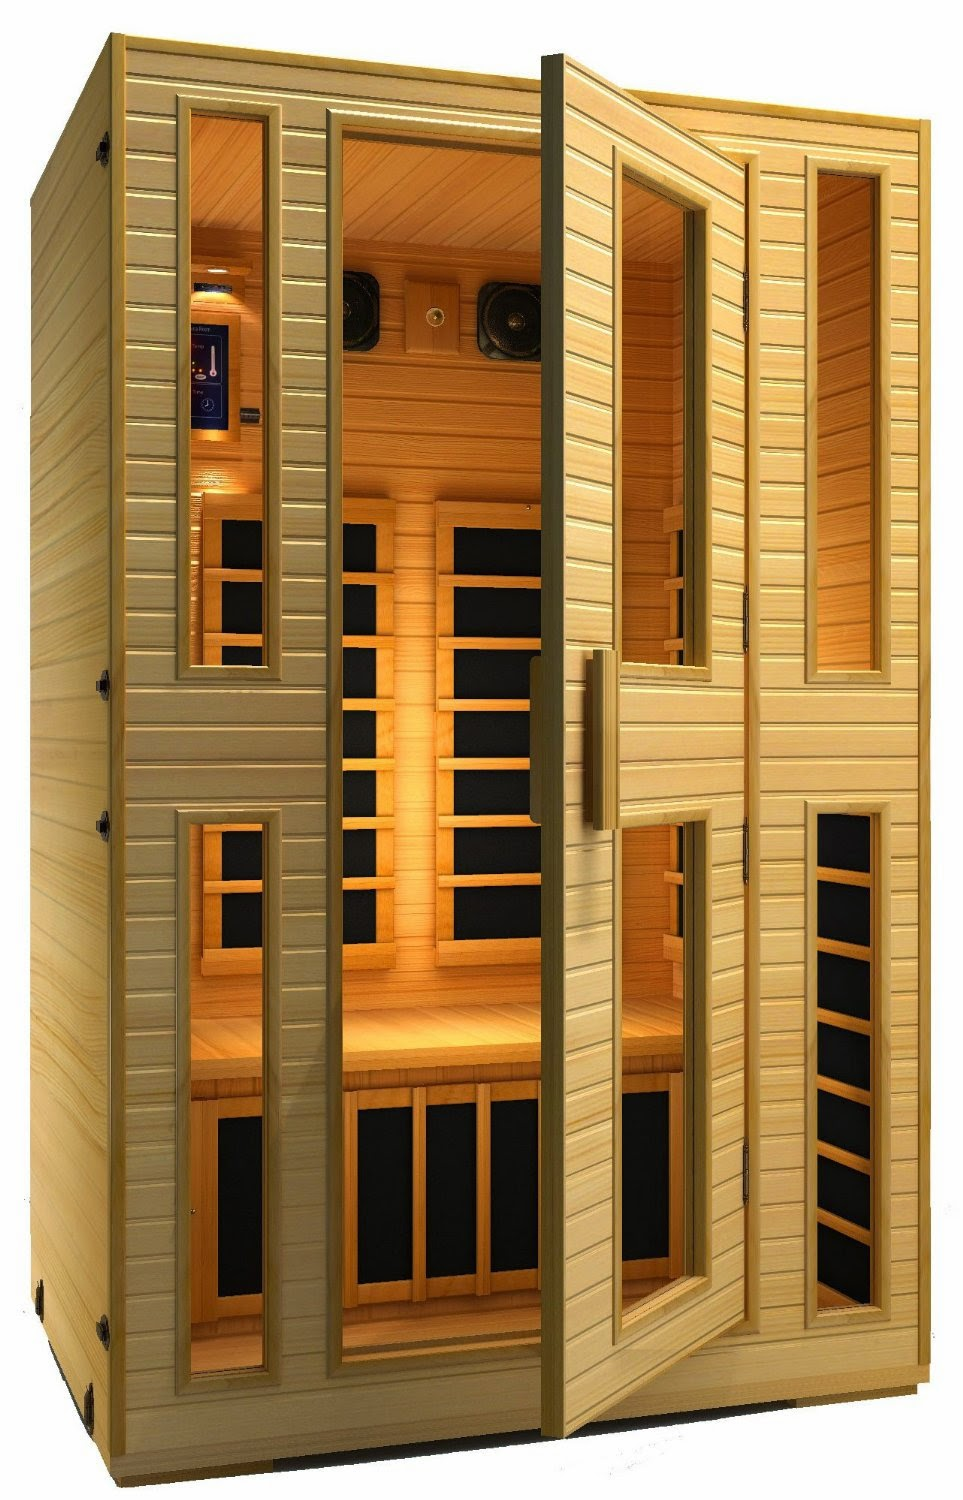 health and fitness den health benefits of saunas. Black Bedroom Furniture Sets. Home Design Ideas